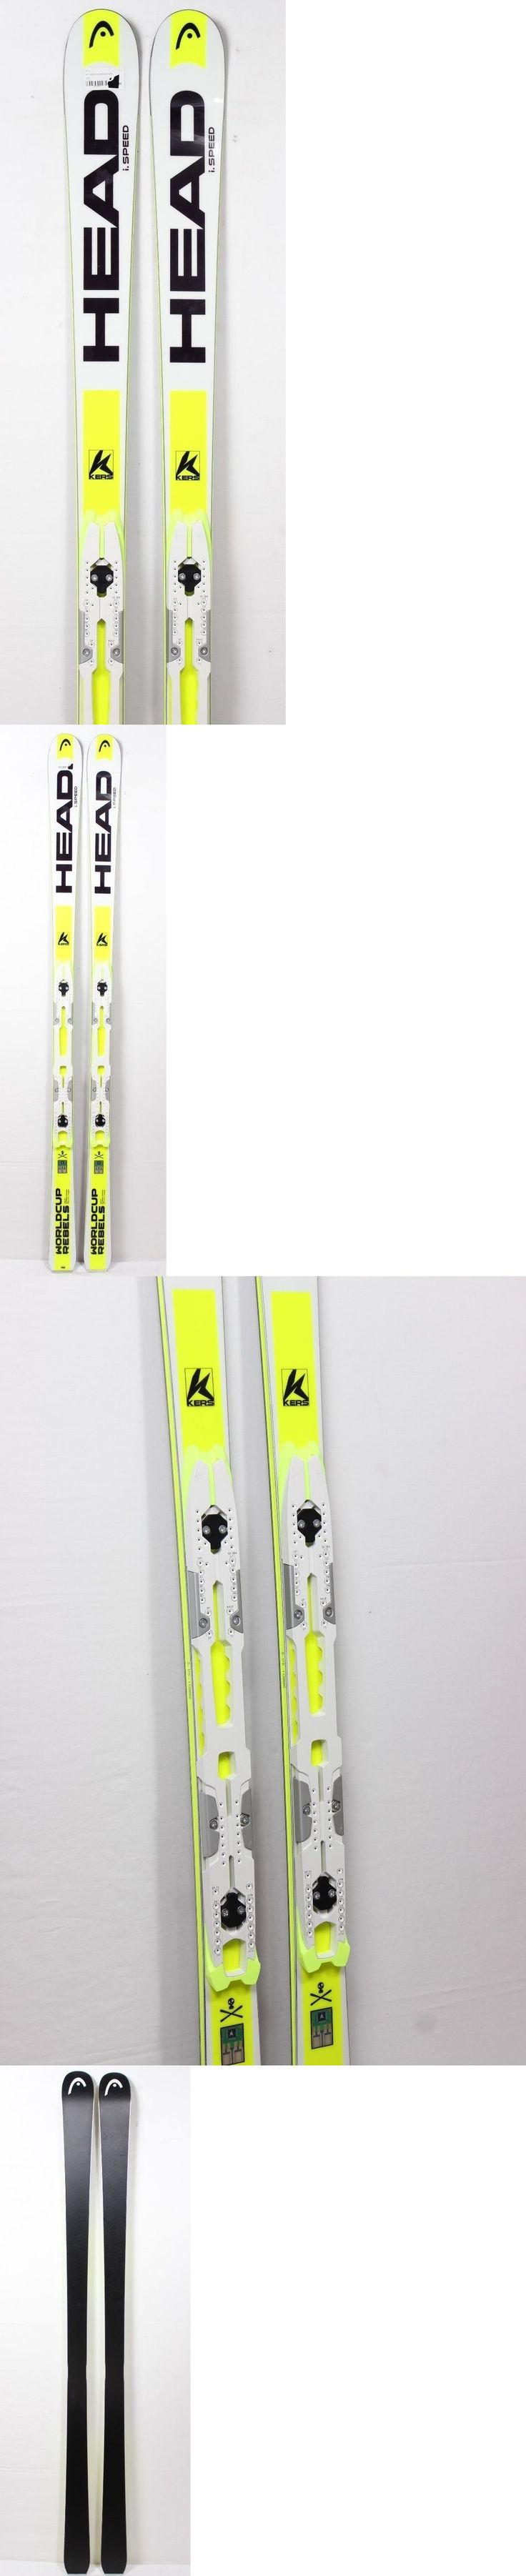 Skis 42814: 2016 Head World Cup Rebels I.Speed Skis -> BUY IT NOW ONLY: $324.99 on eBay!